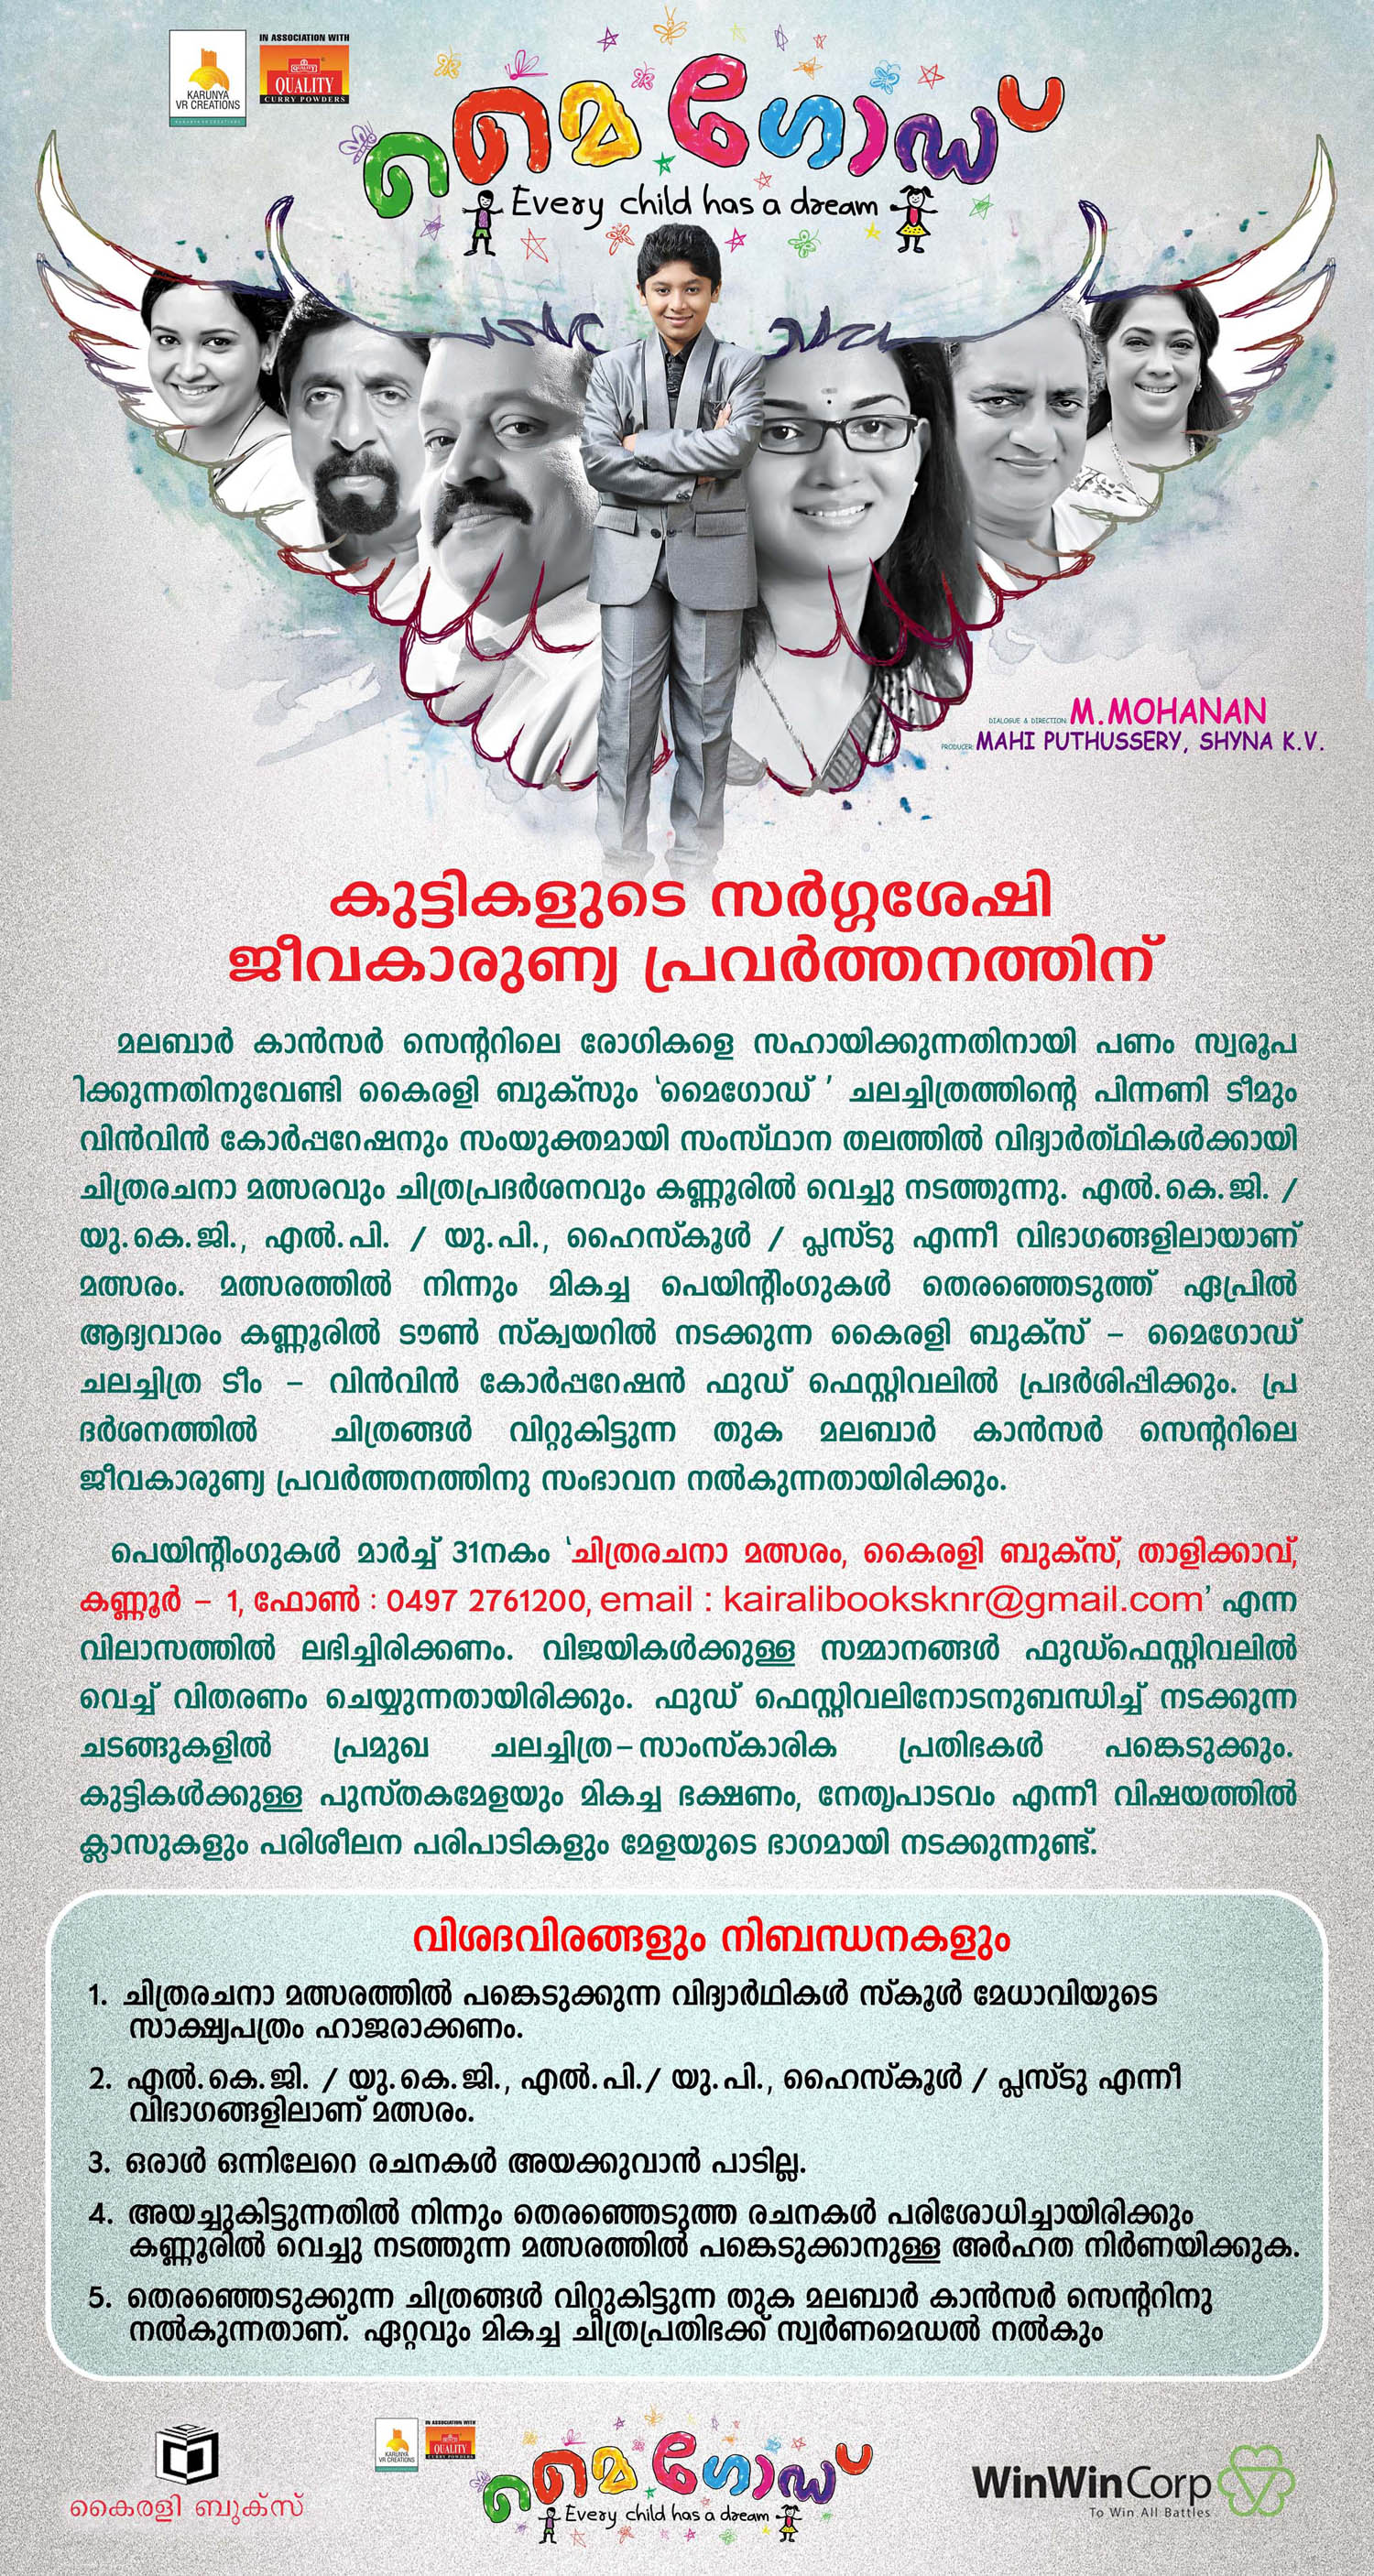 A contest for Charity, By My God movie team-Suresh Gopi-Honey Rose-Onlookers Media